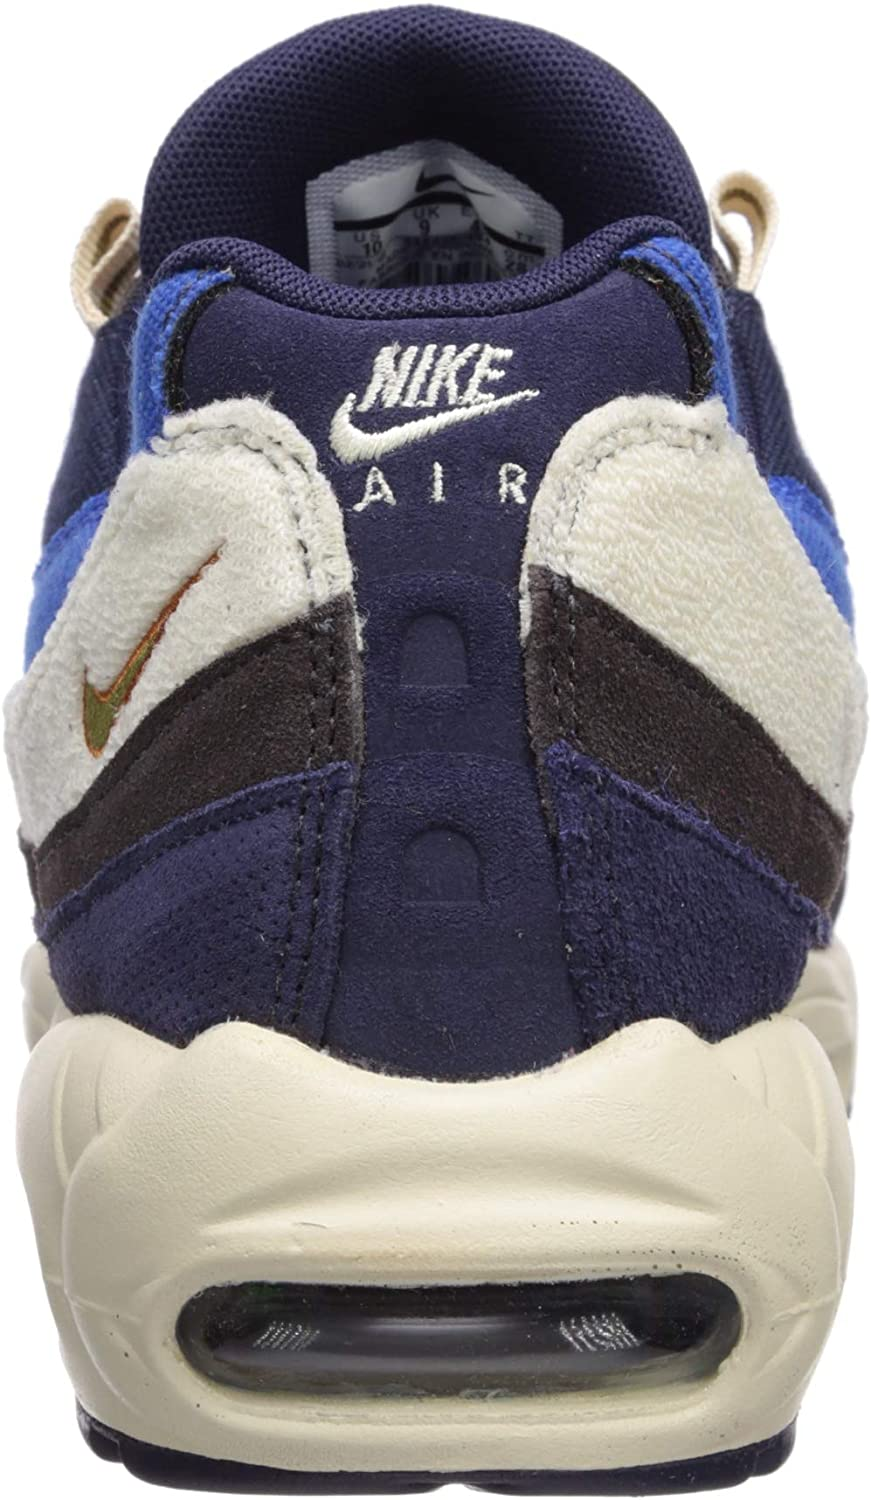 Nike Air Max 95 PRM, Chaussures de Running Compétition Homme Multicolore Blackened Blue Camper Green Monarch 404